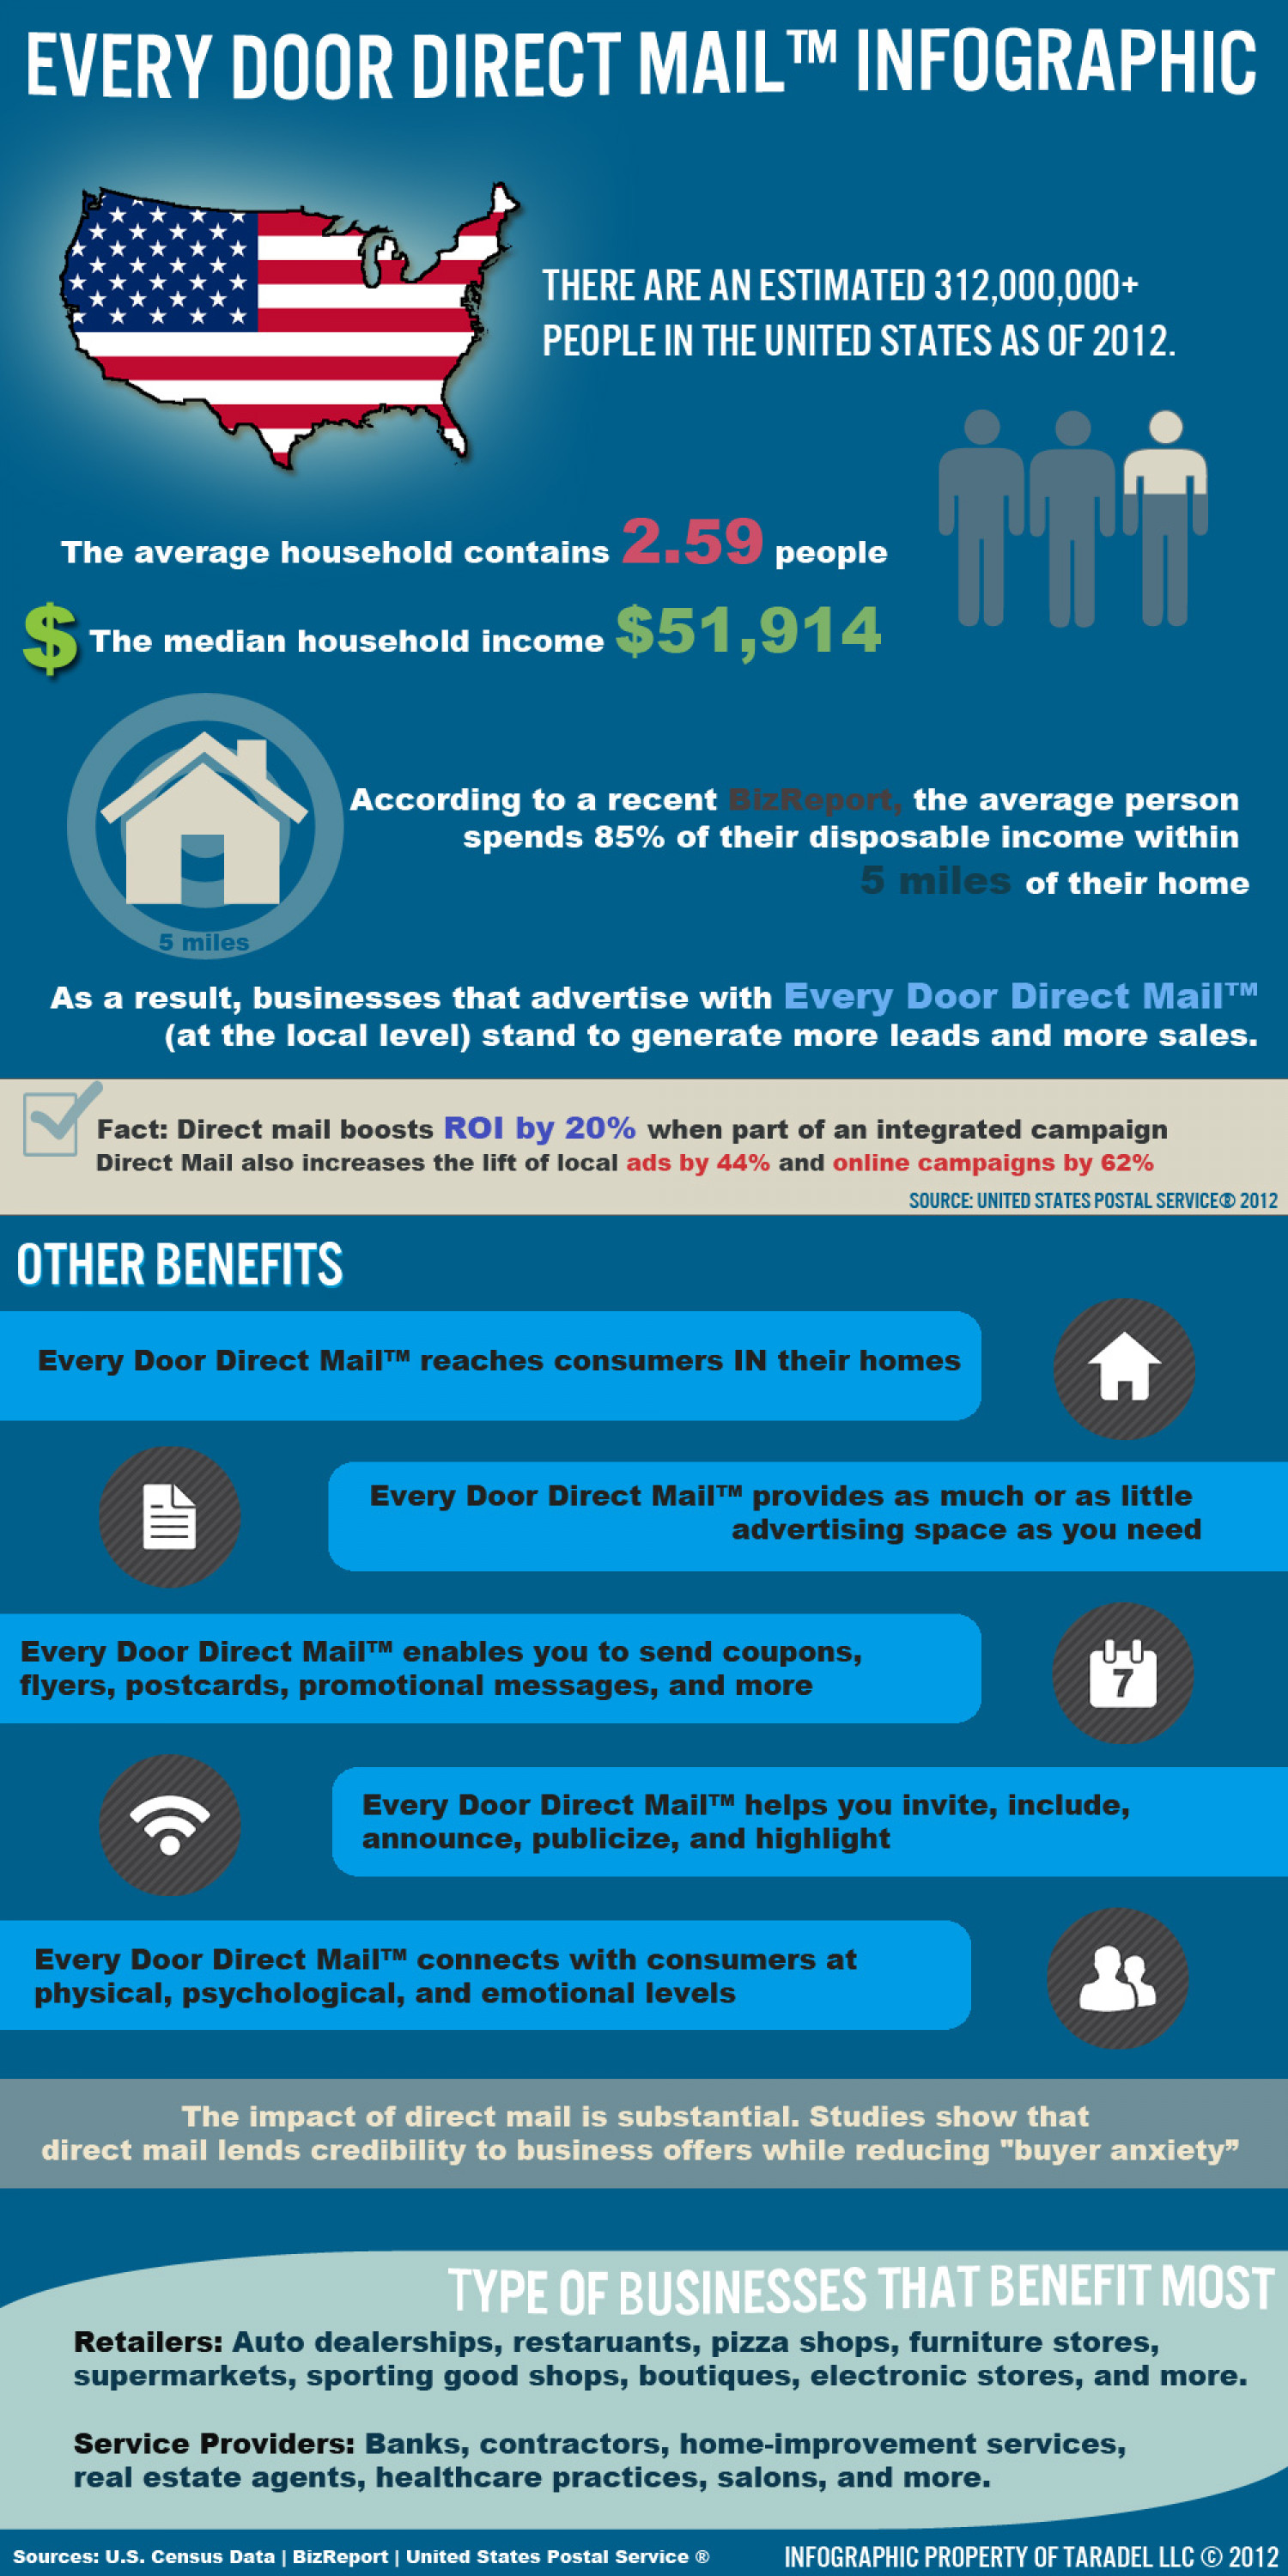 Every Door Direct Mail Infographic